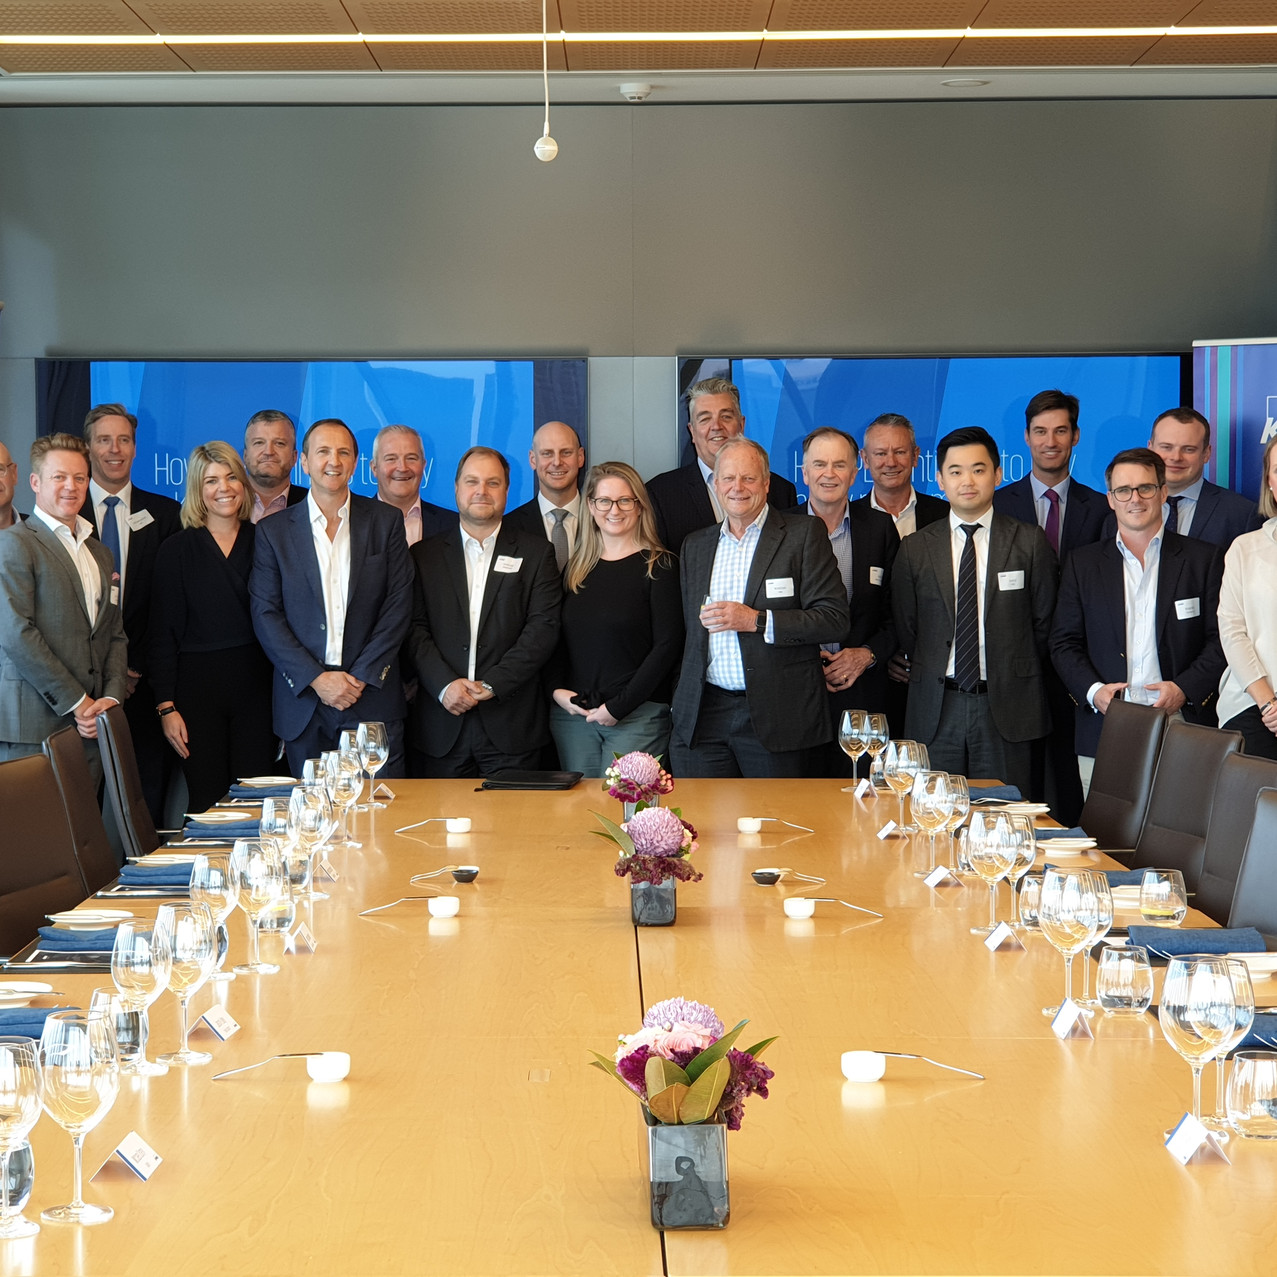 190405 KPMG lunch group